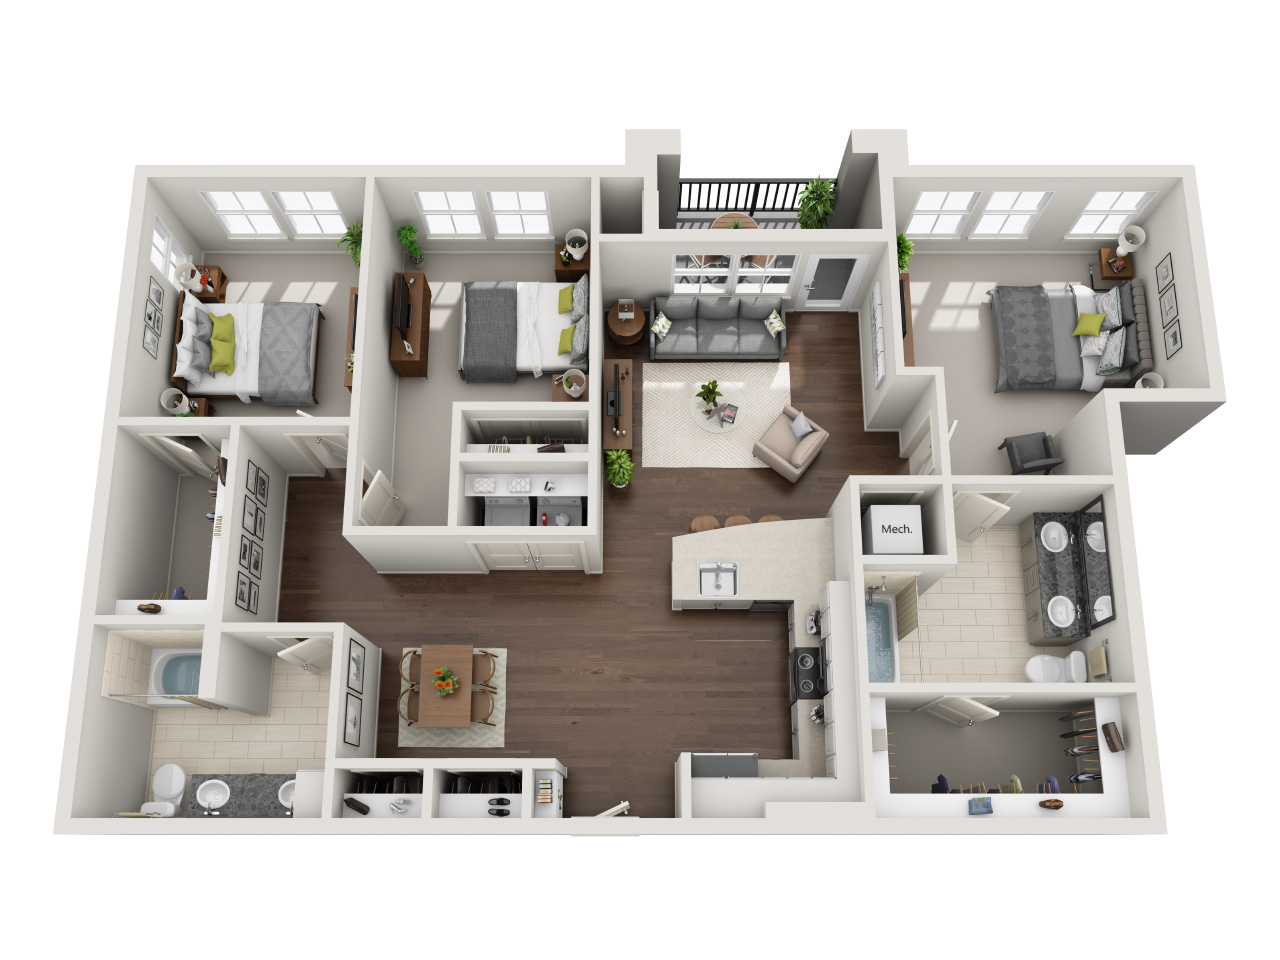 Three bedrooms & Two full bathrooms